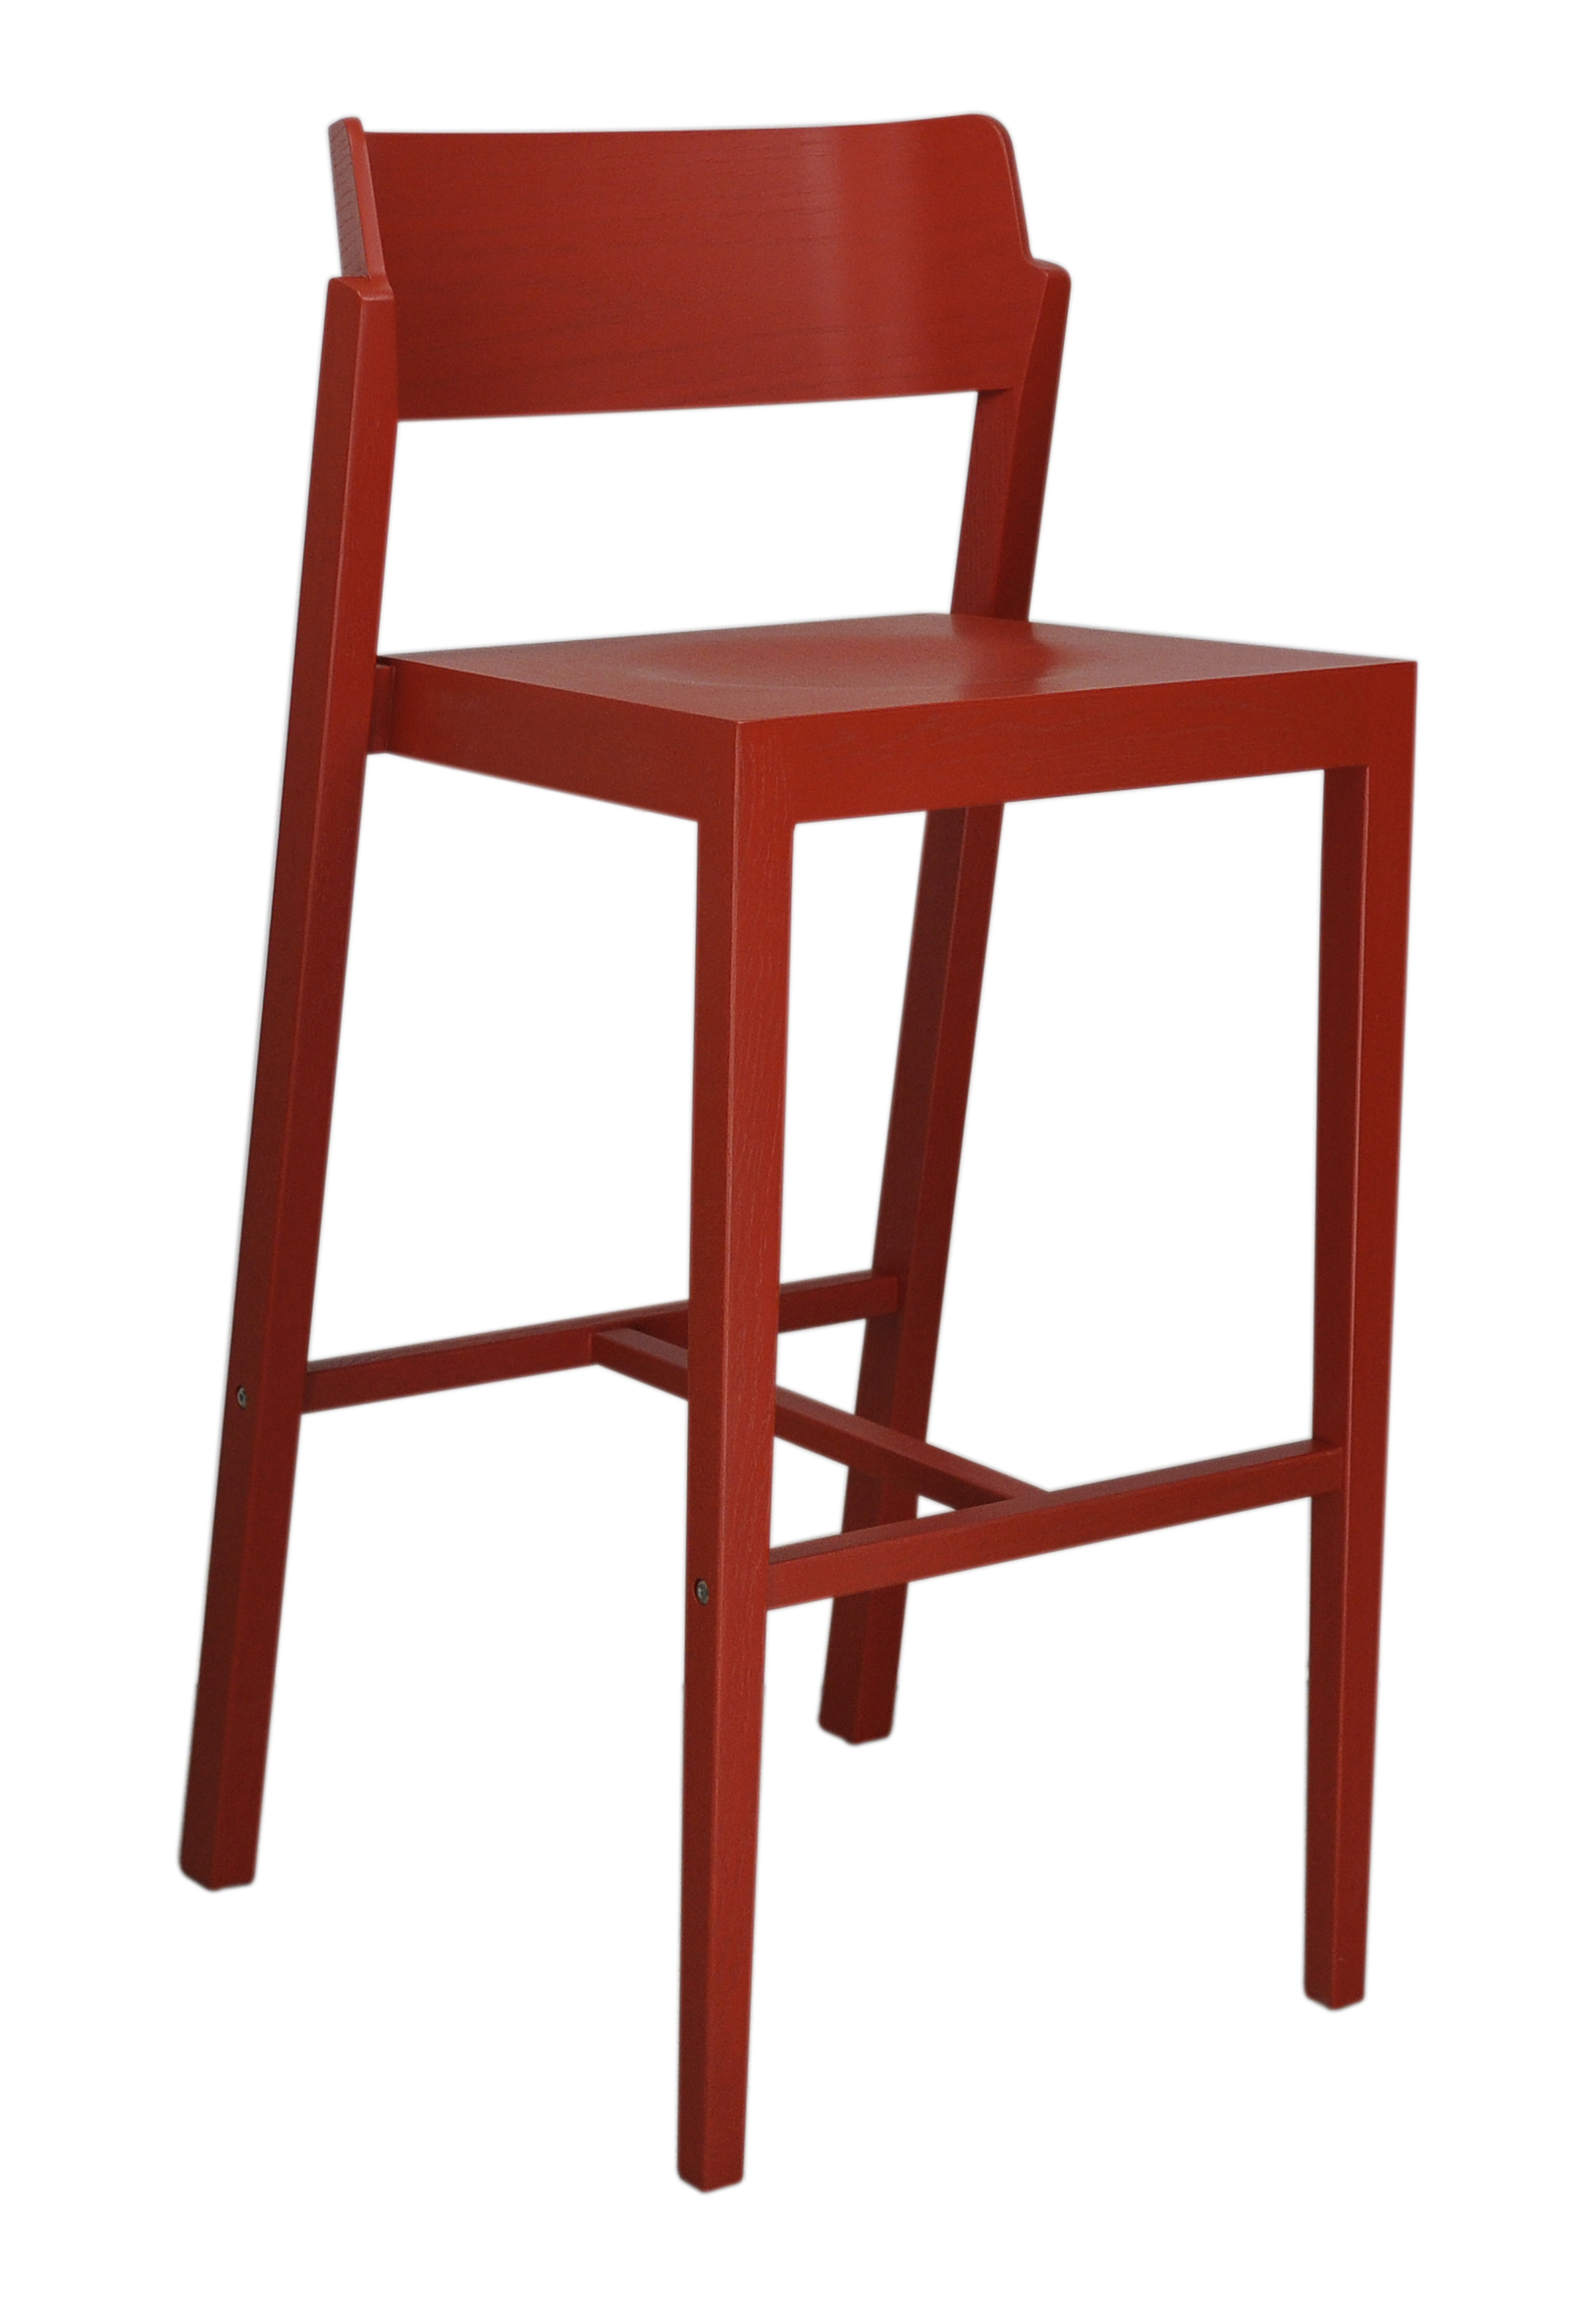 The 100 Bar Stool in red